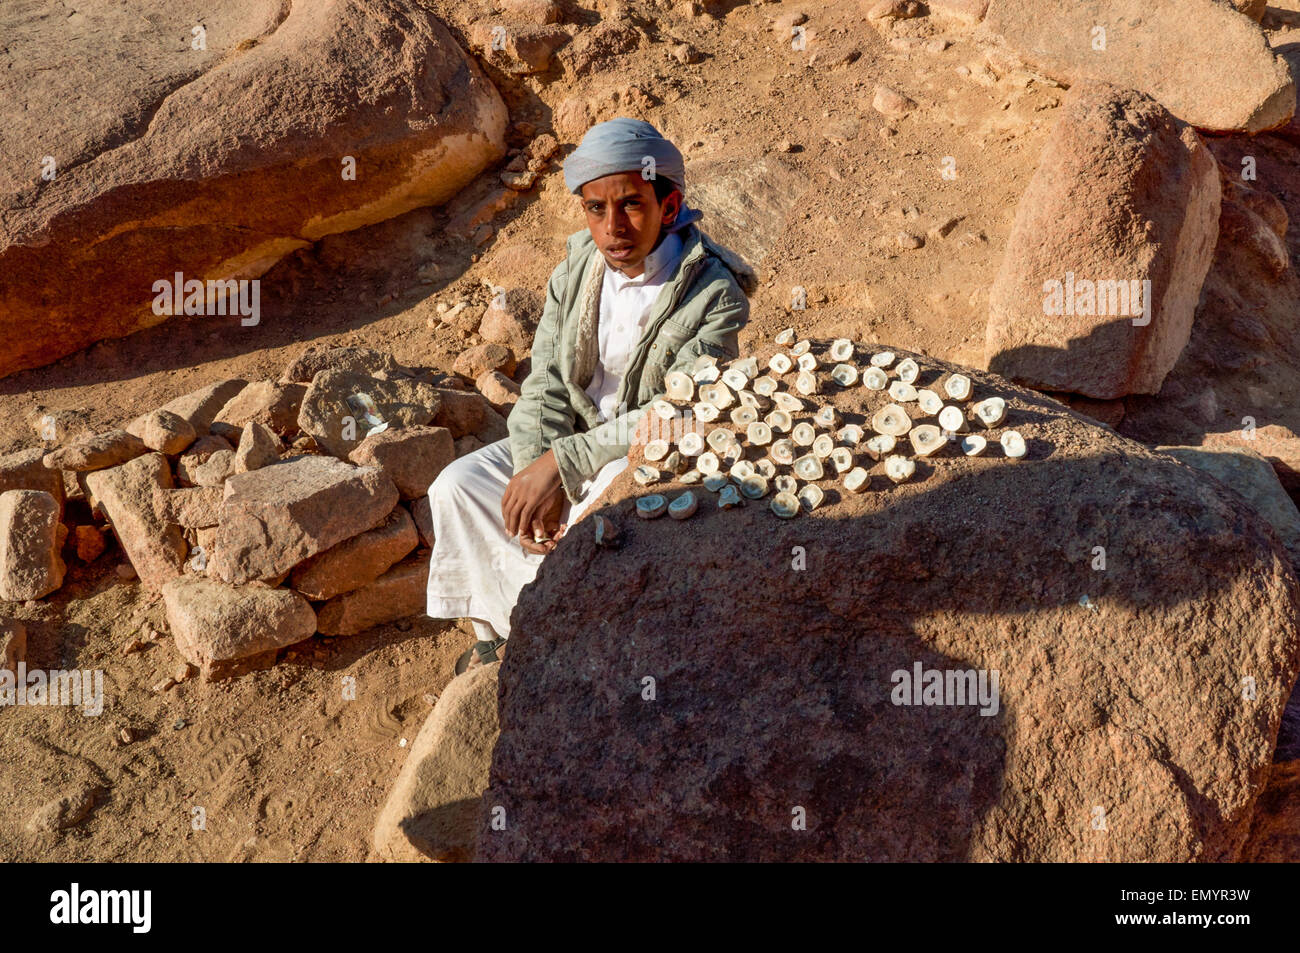 Bedouin guy near the Mount Sinai, who sells local stones as souvenirs to hiking pilgrims - Stock Image